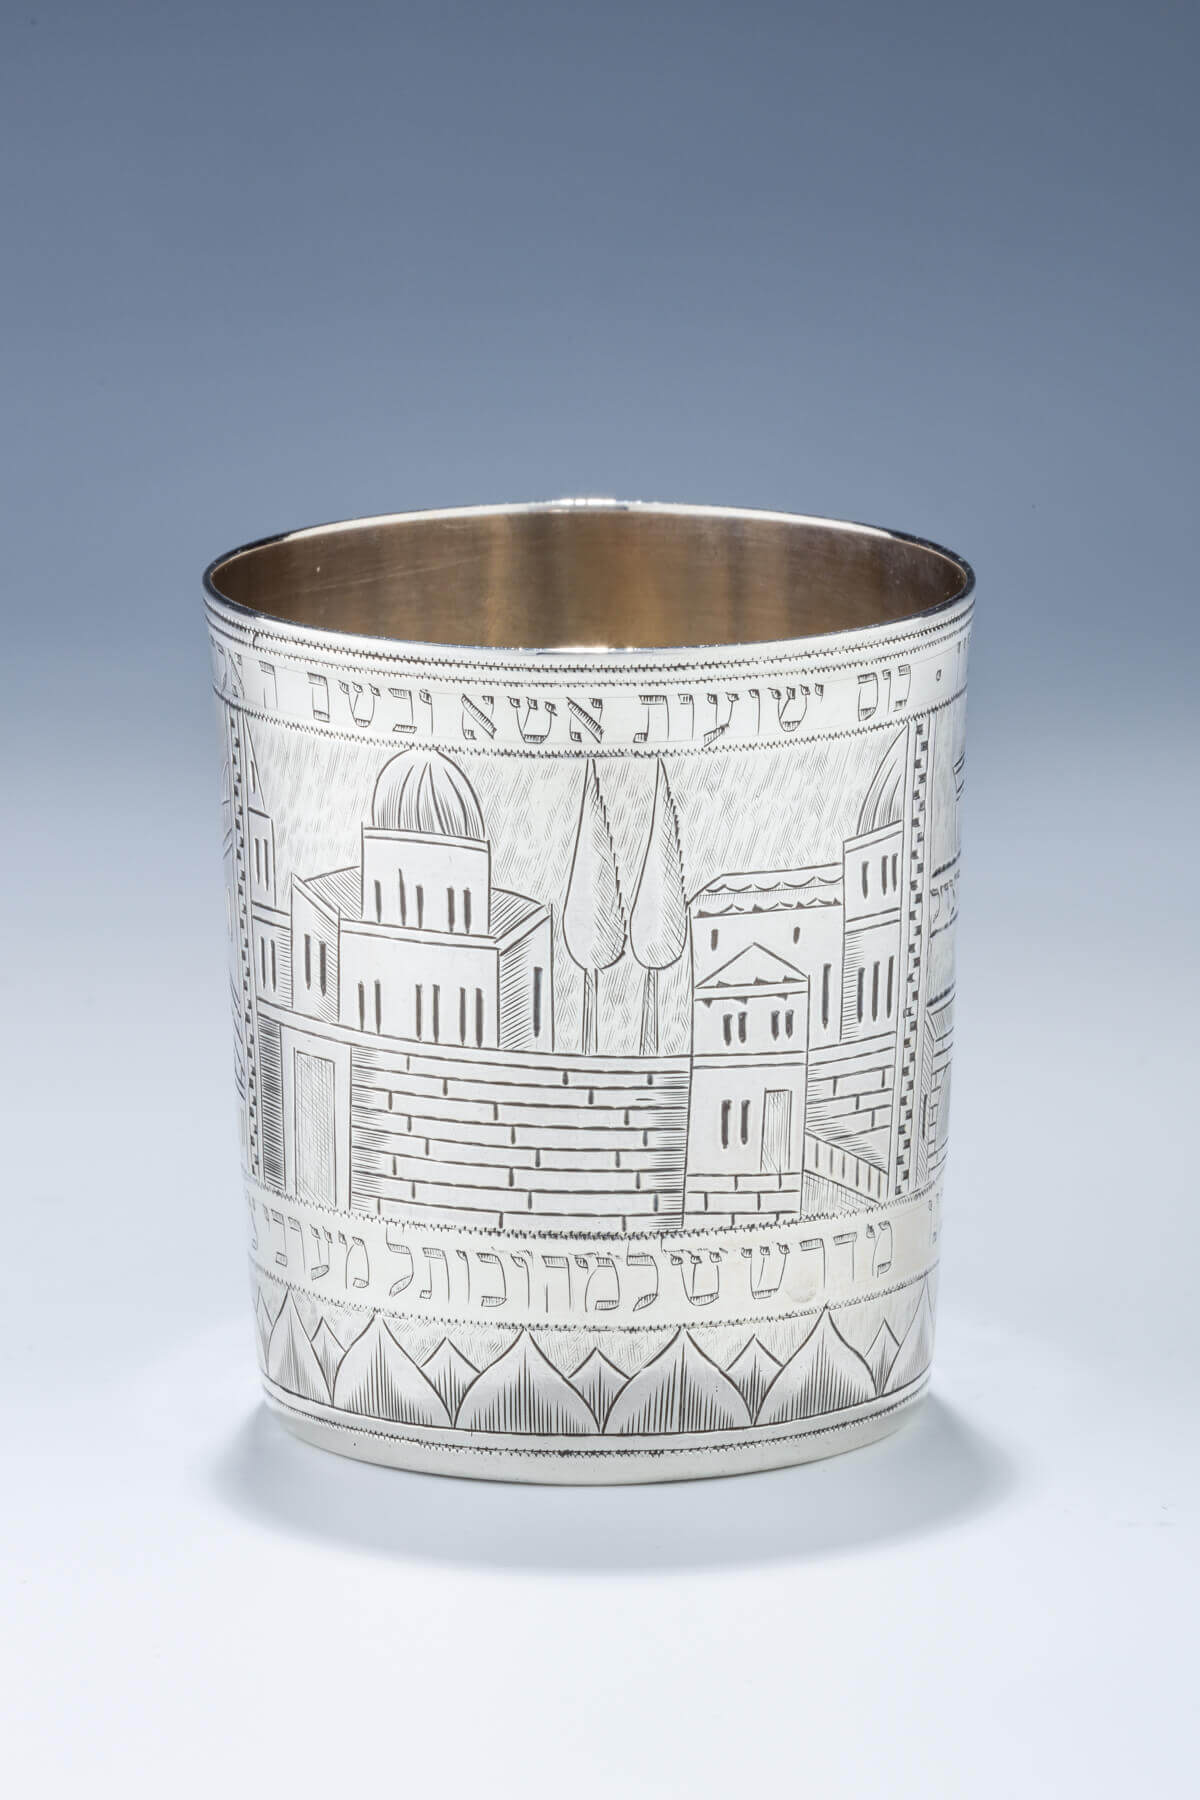 074. A RARE AND IMPORTANT SILVER KIDDUSH BEAKER